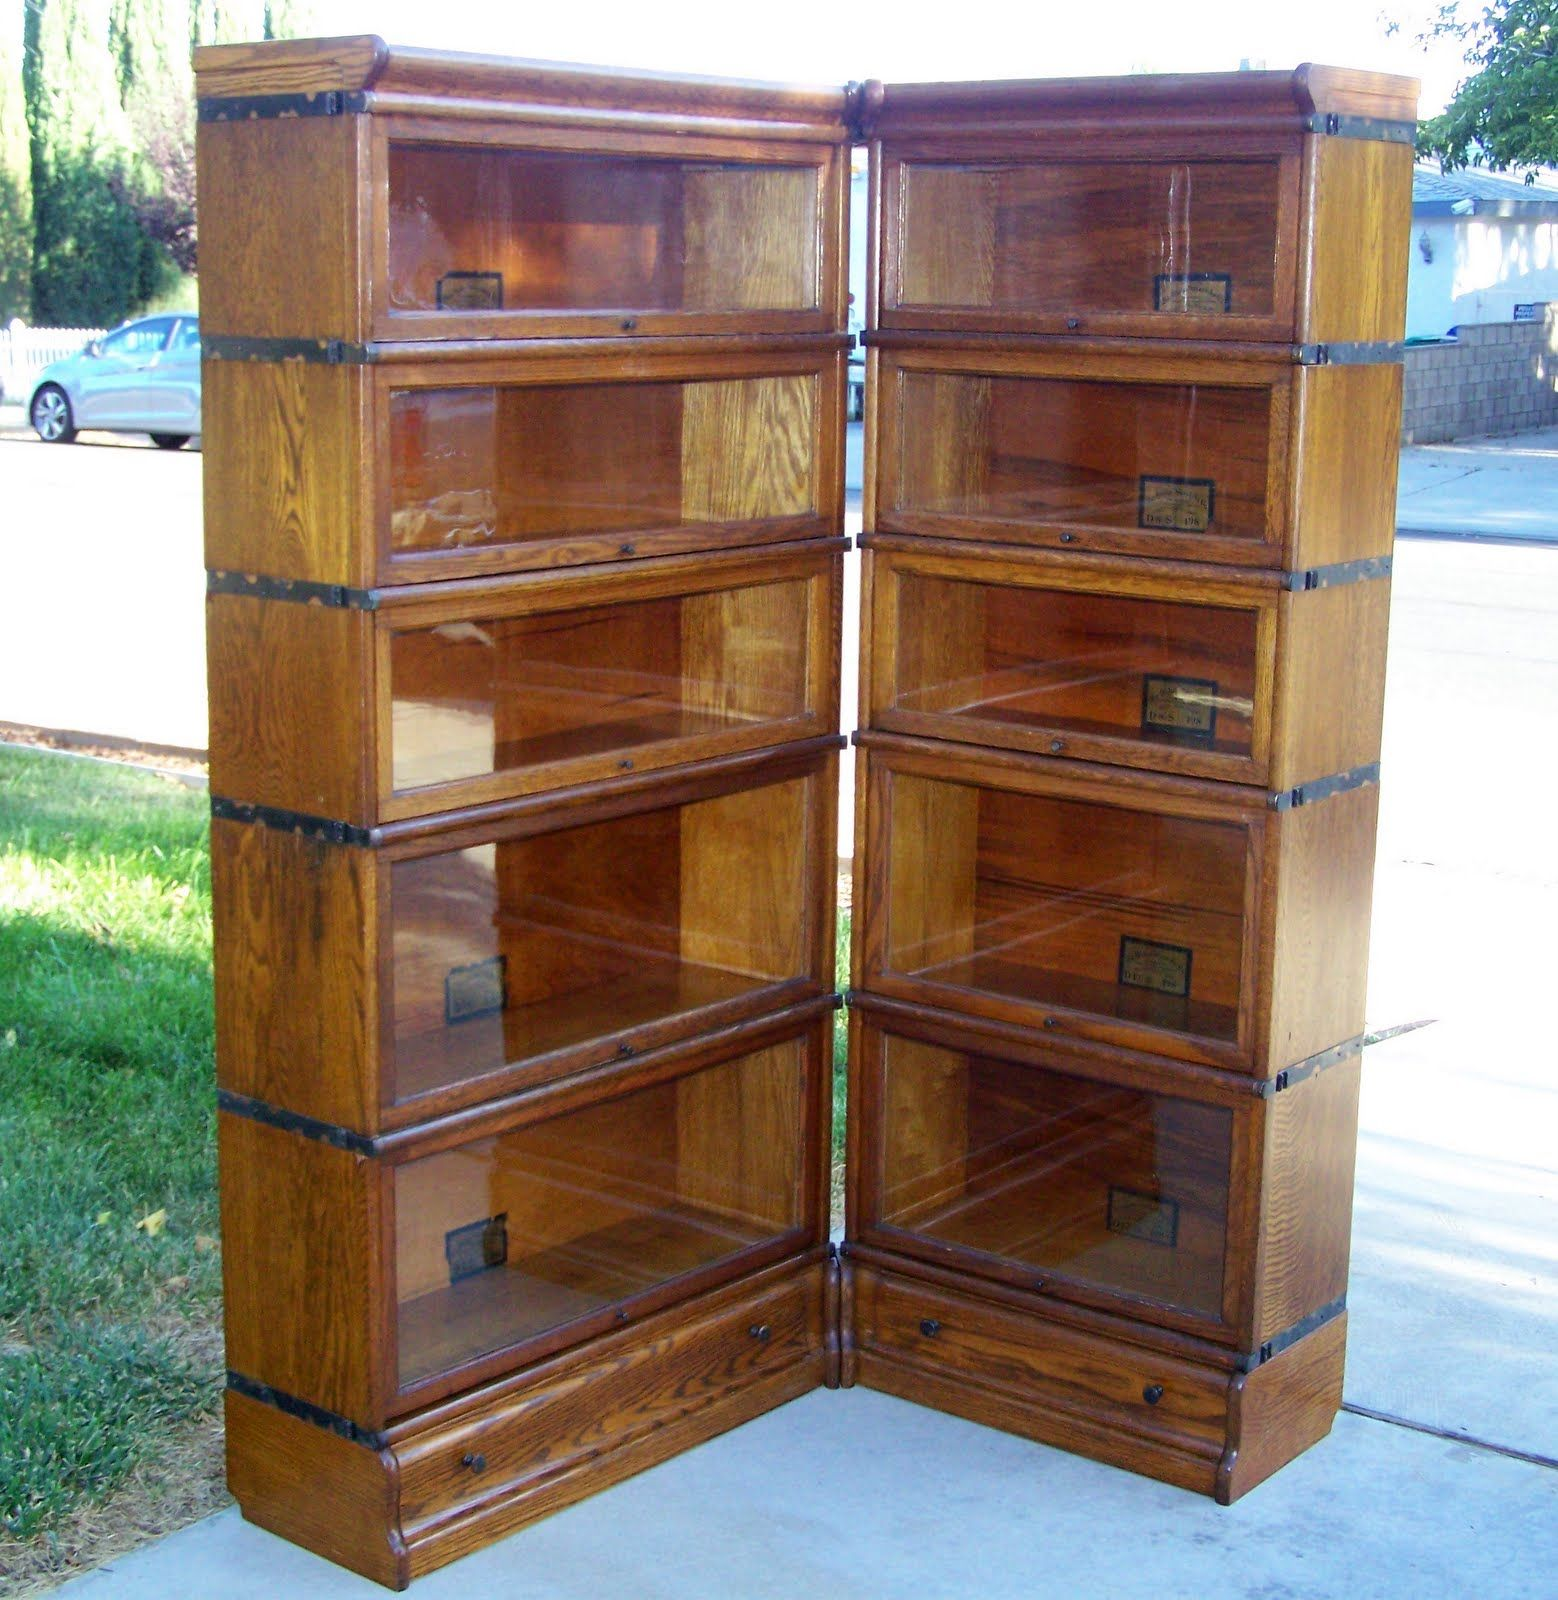 25 3 4 size globe wernicke bookcase corner unit antique lawyer